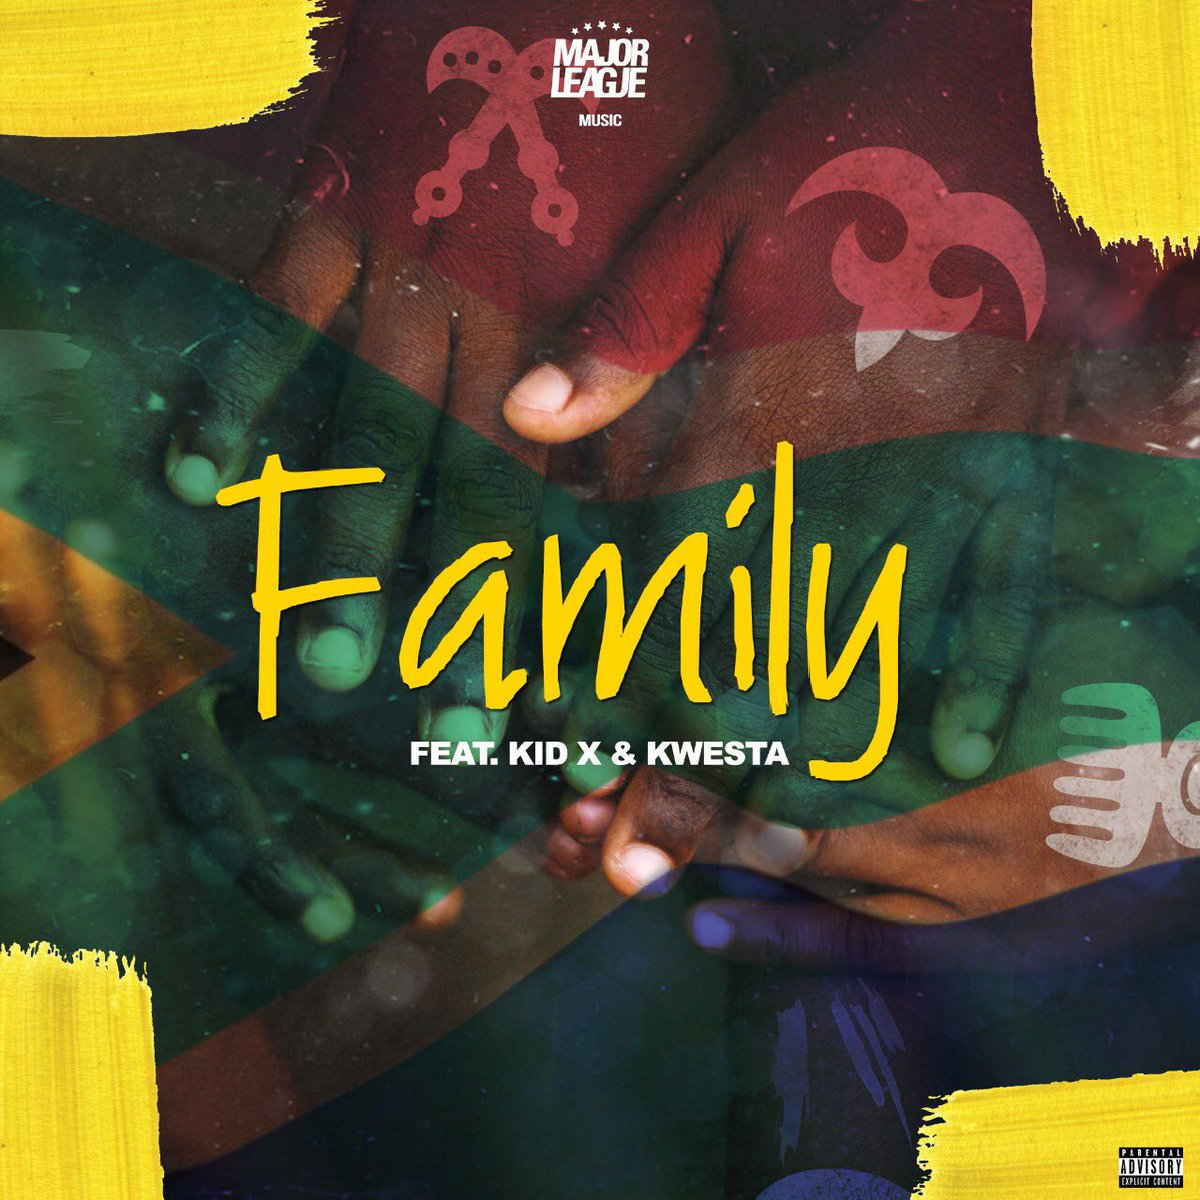 major league djz Listen To Major League DJZ New 'Family' Song Ft. Kwesta & Kid X DlvuucoXcAAS Vx